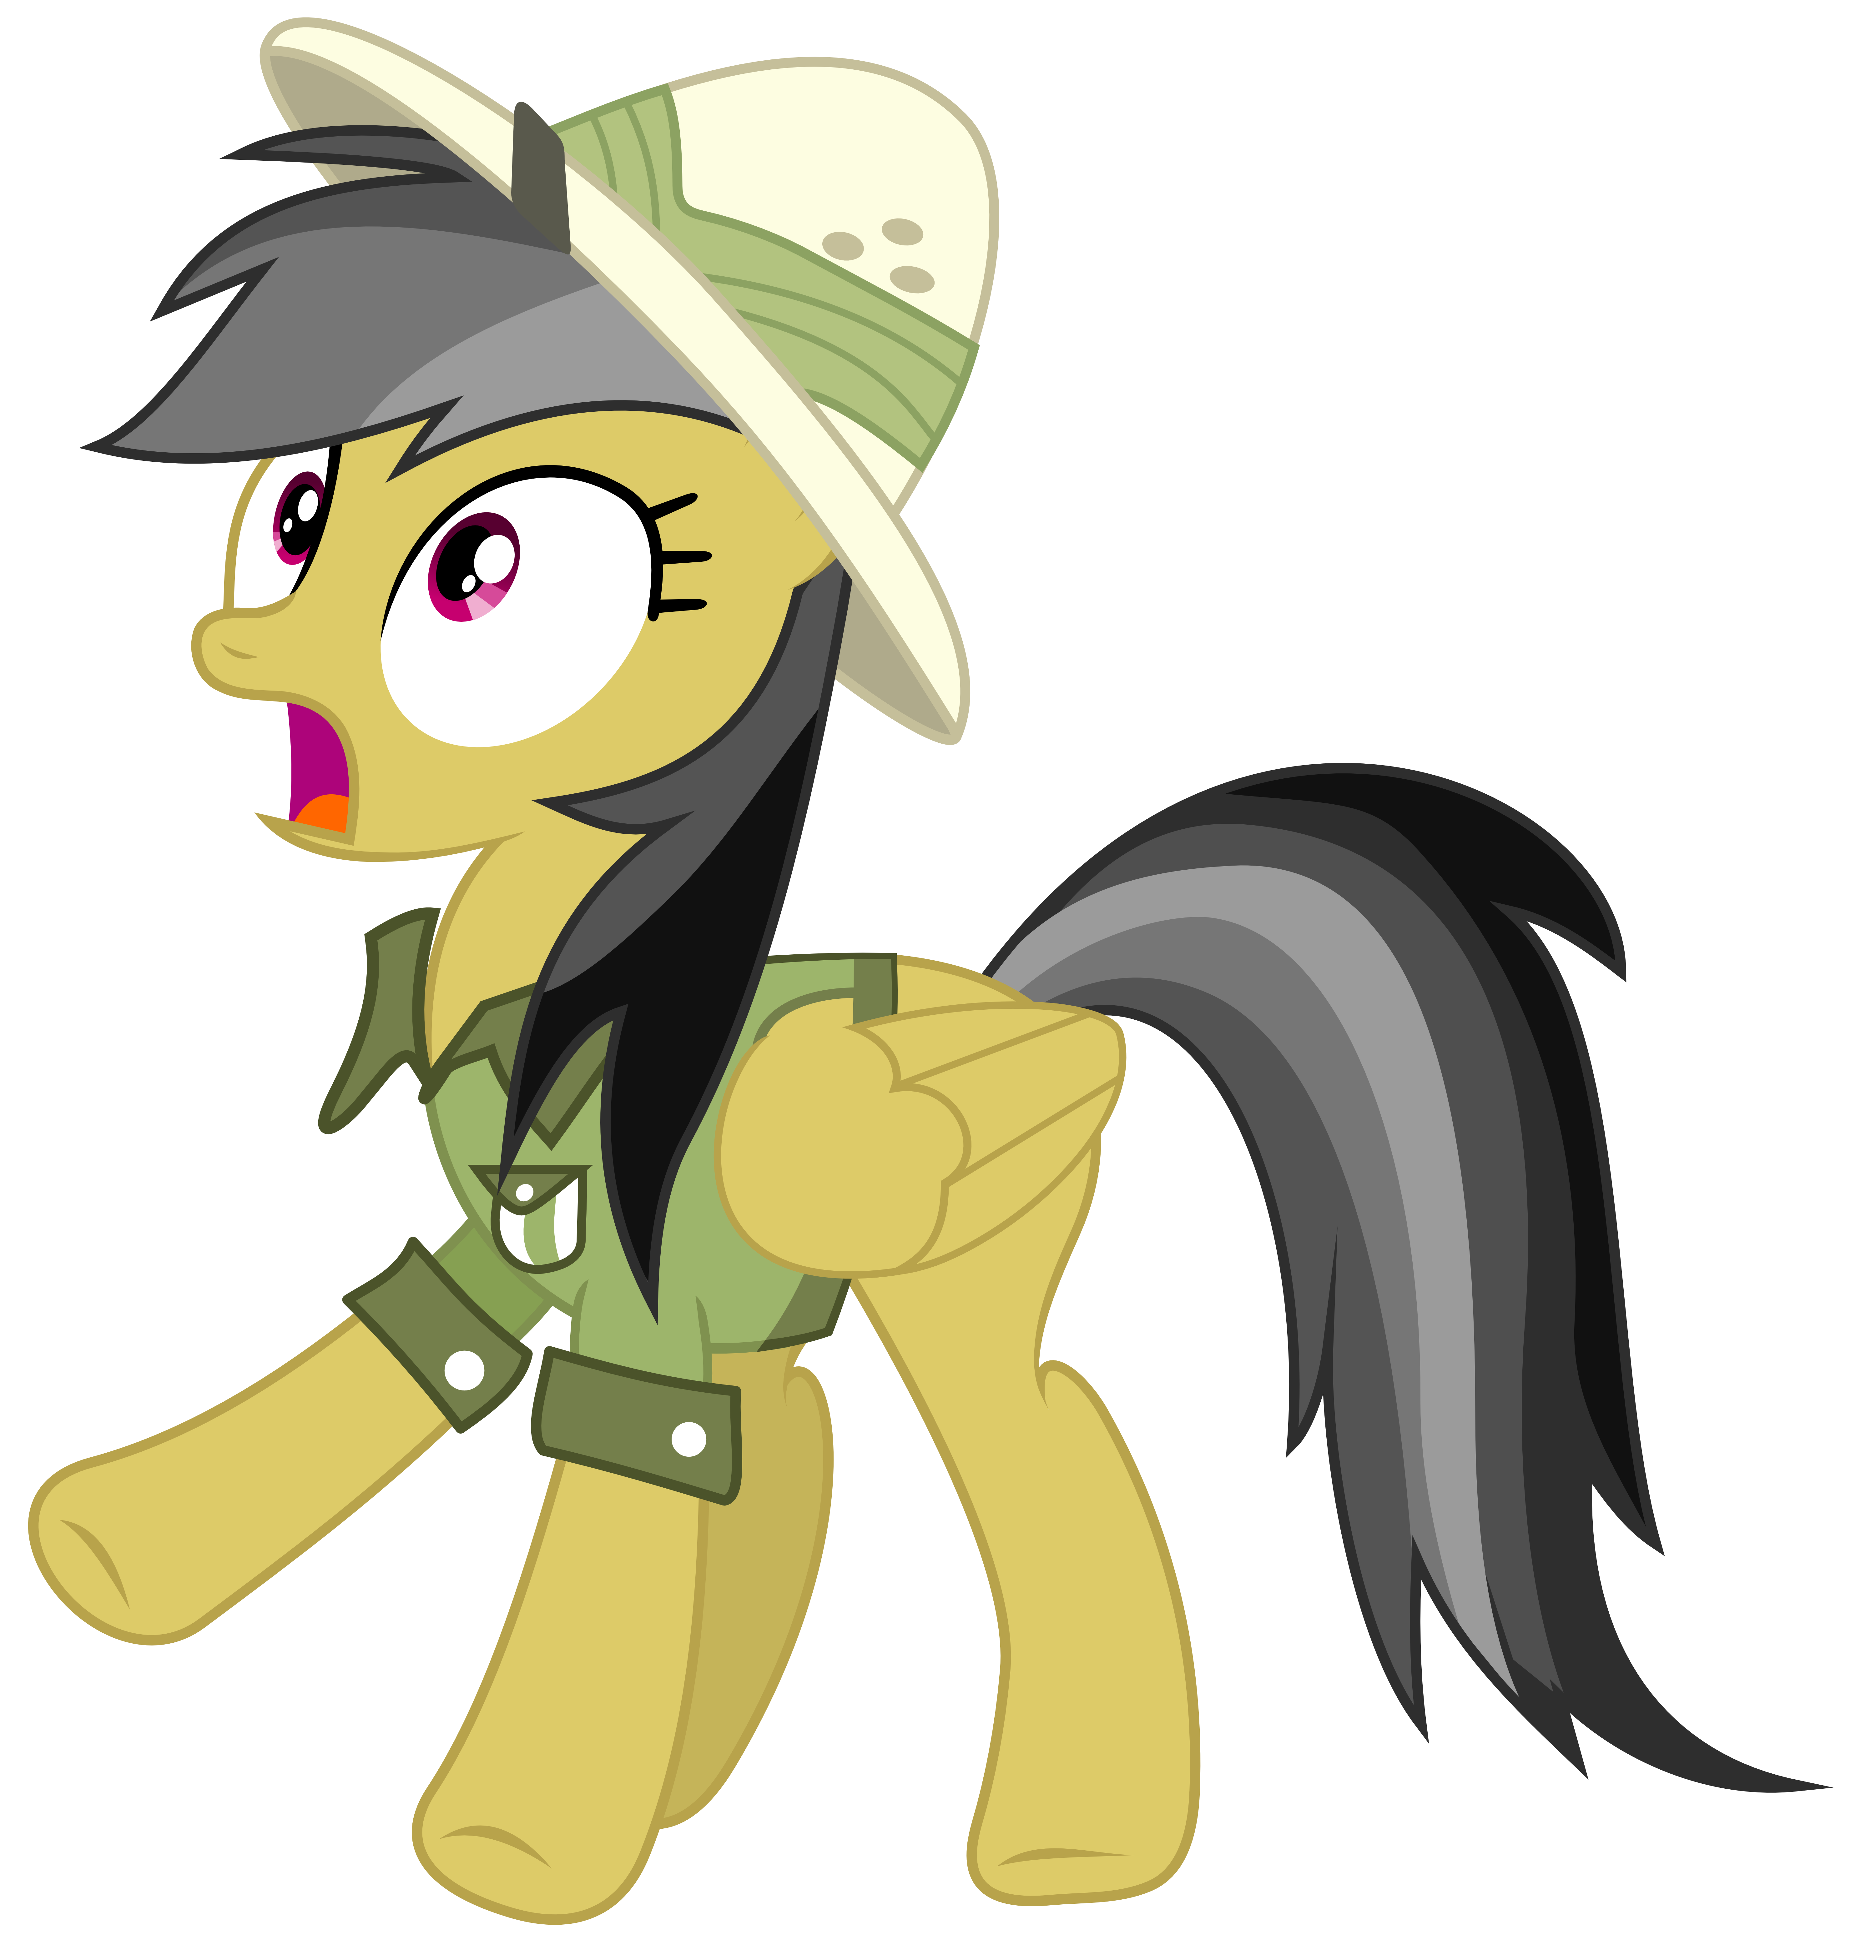 Daring Do In: Daring Don't by liamwhite1 on DeviantArt